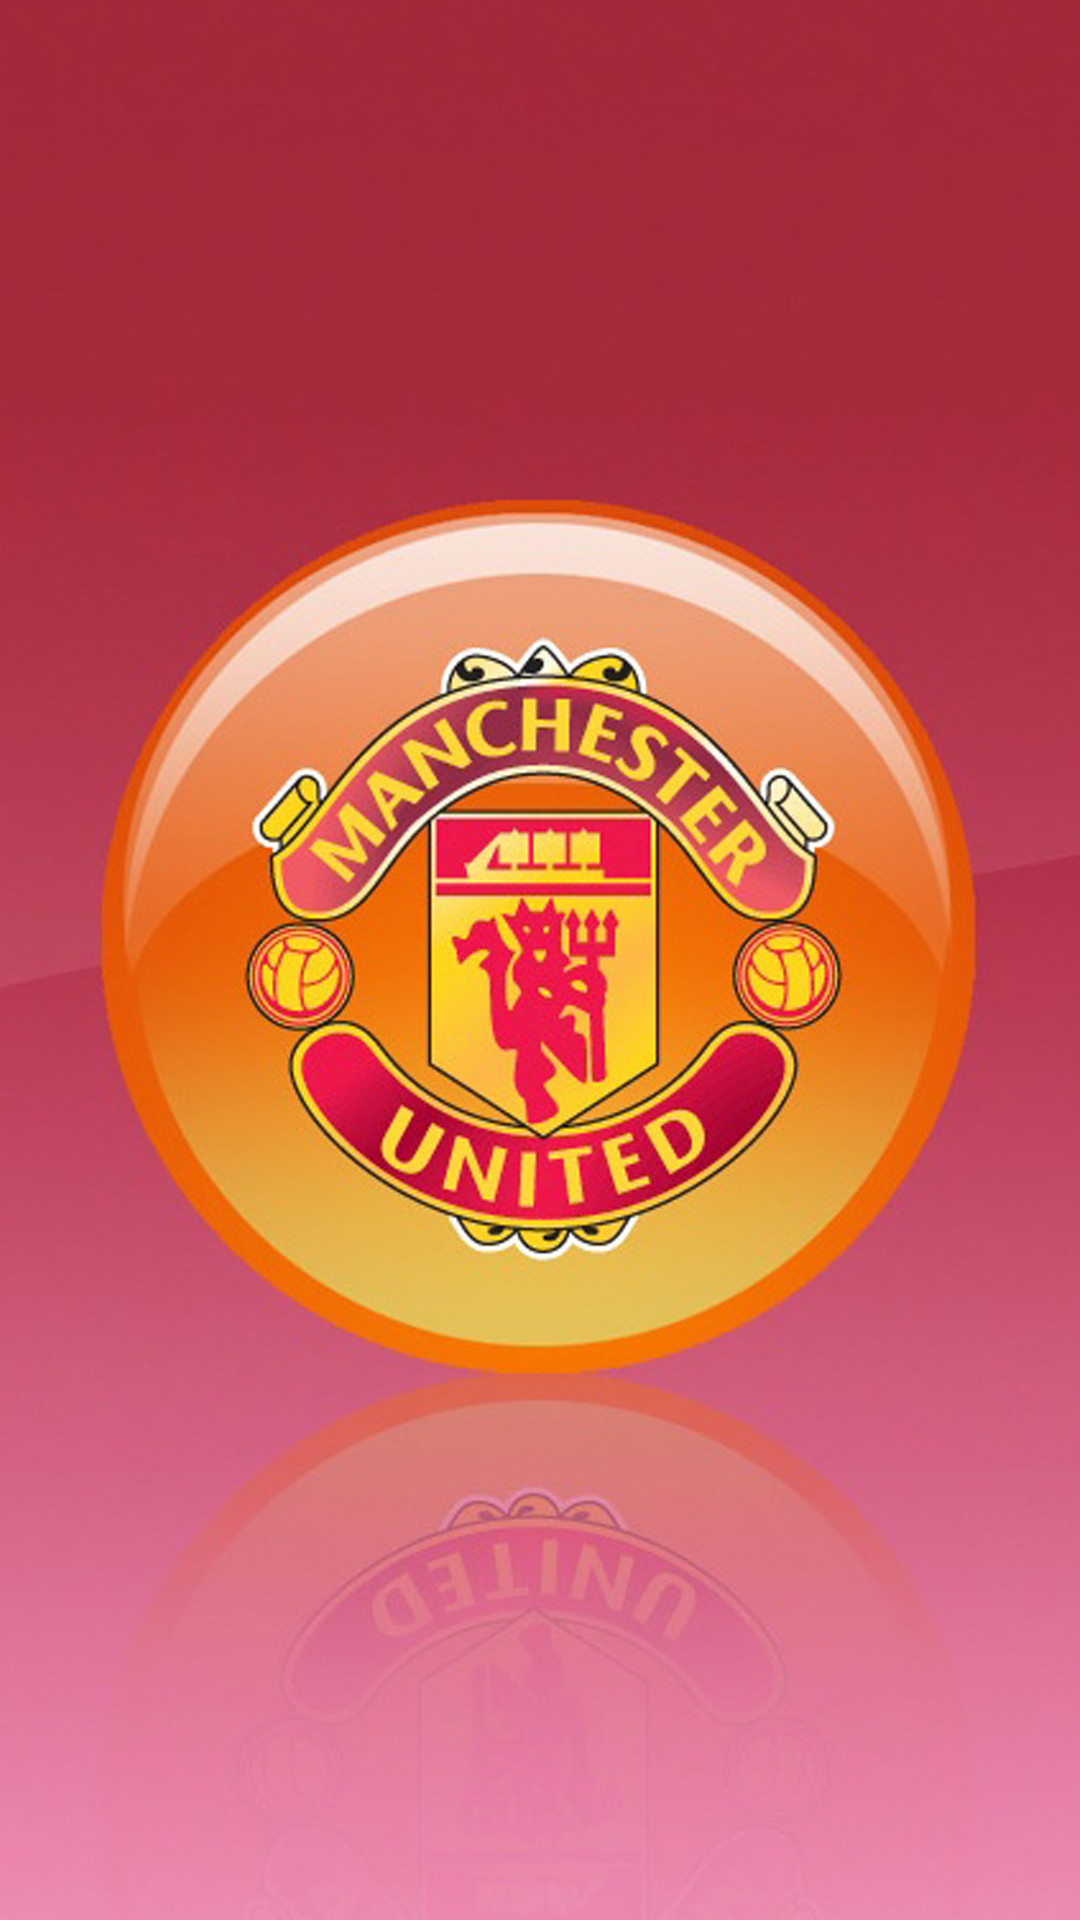 1080x1920 Apple iPhone 6 Plus HD Wallpaper - Manchester United Logo in 3D  #appleiphone6plus #appleiphone6wallpaper